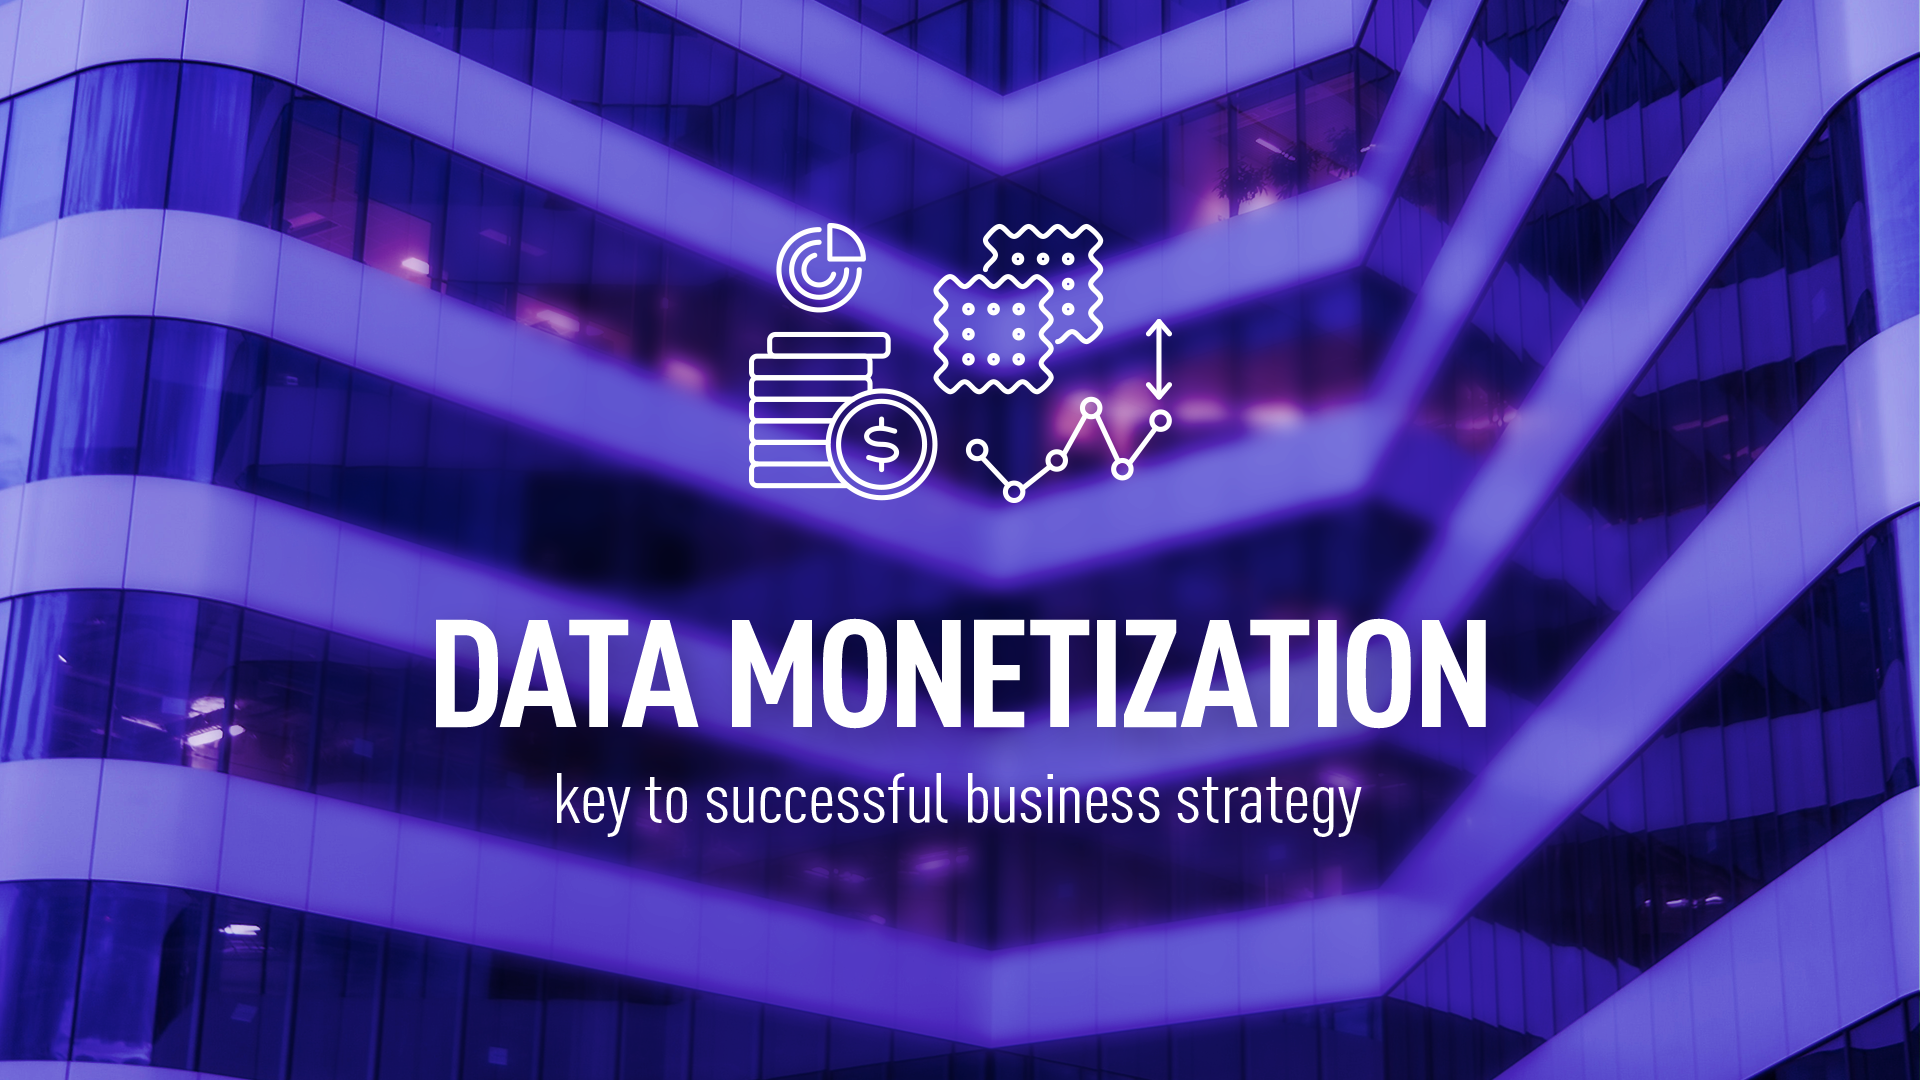 Data monetization – how to monetize data successfully